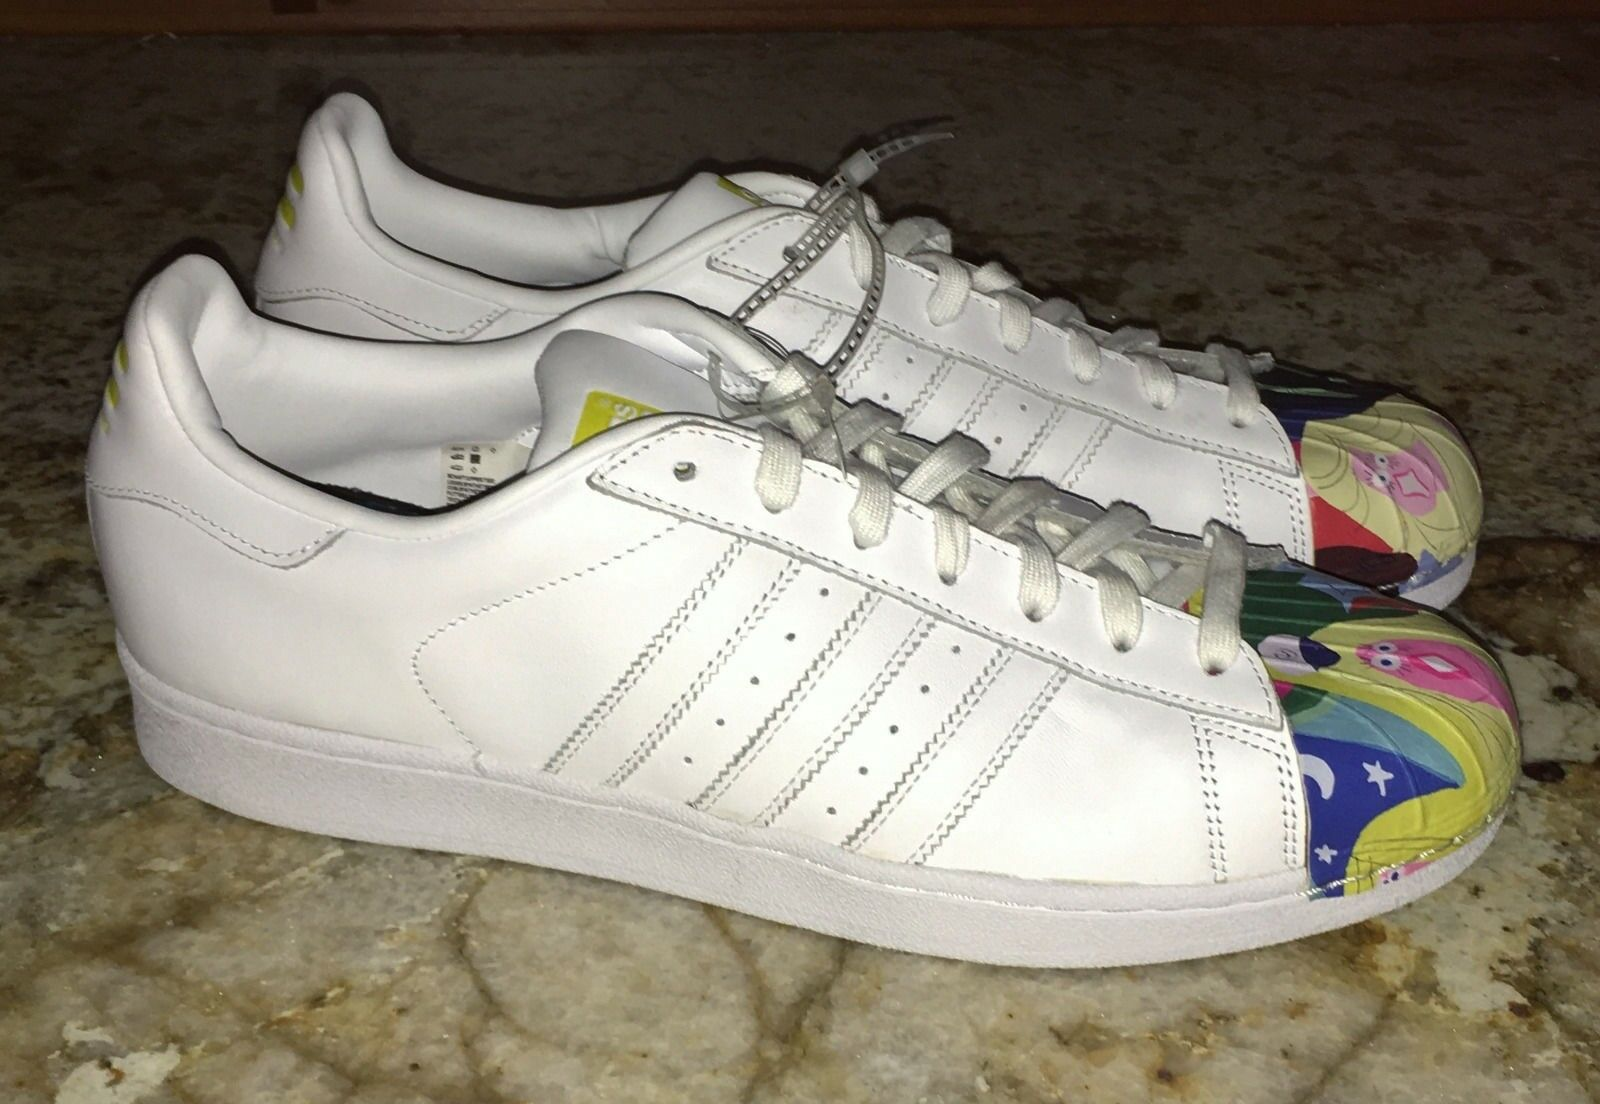 ADIDAS White Todd James Supershell Superstar Pharrell shoes Sneakers NEW Mens 11